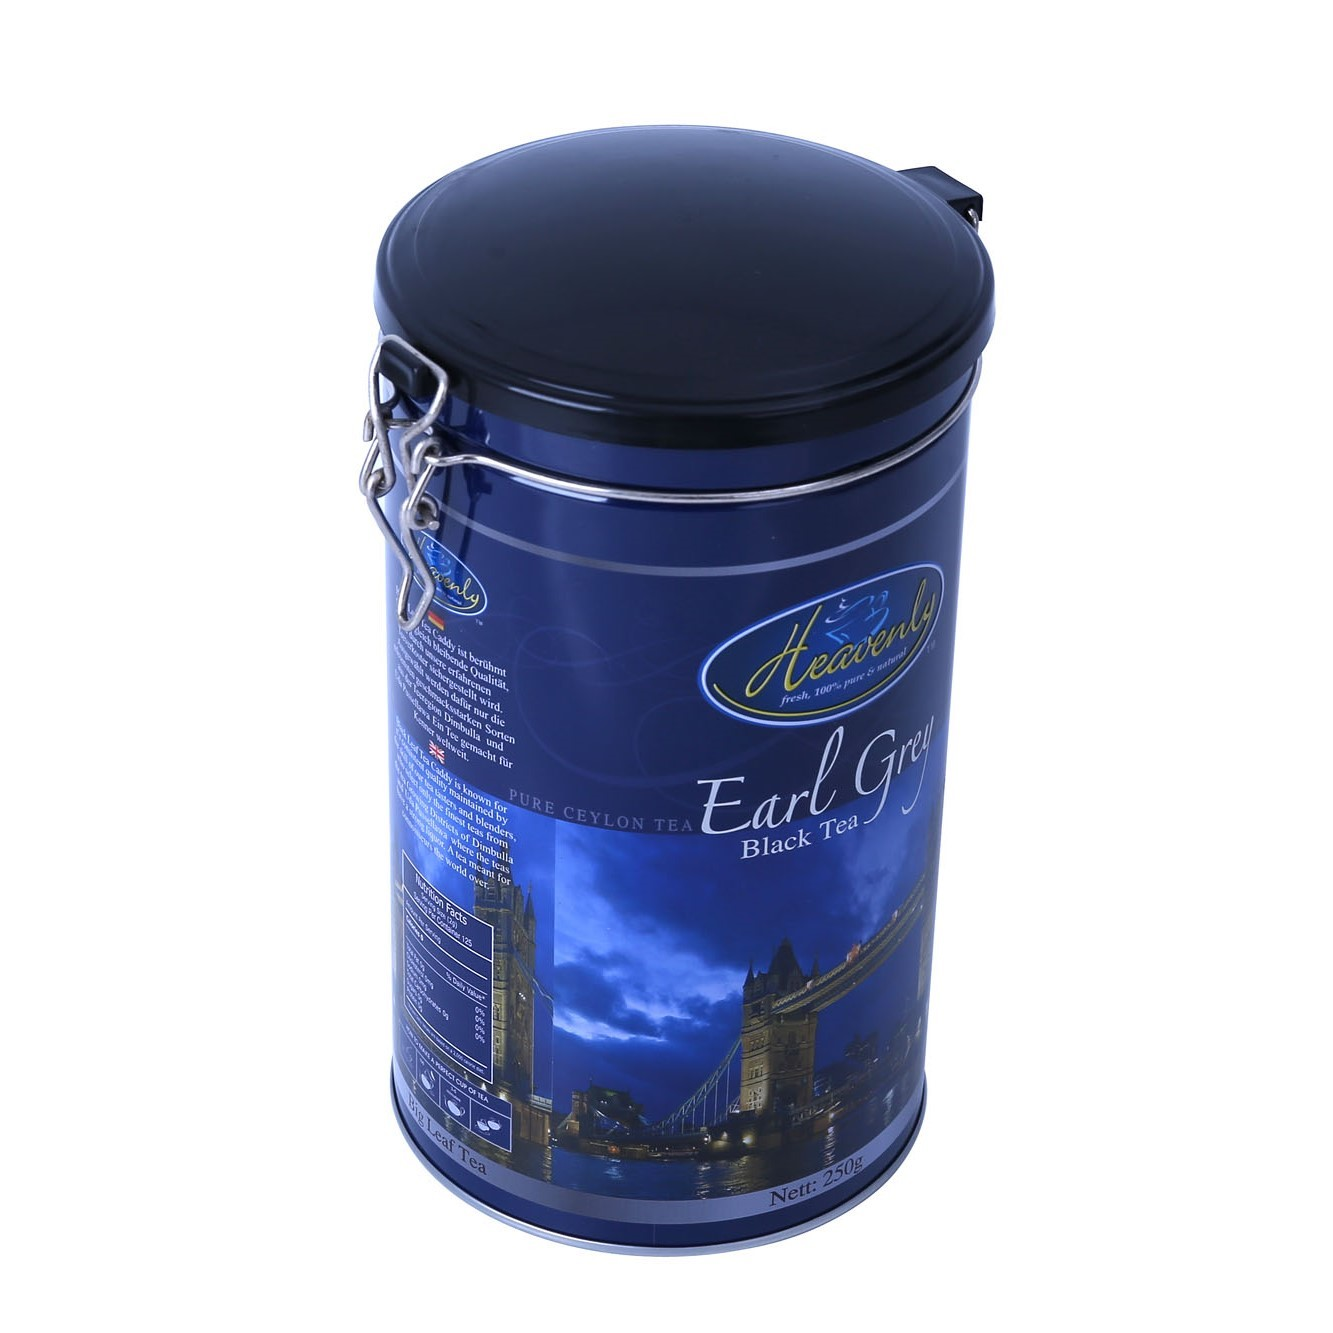 Food grade customized printing empty meta tea tin can 250g gift earl grey tea container packaging box